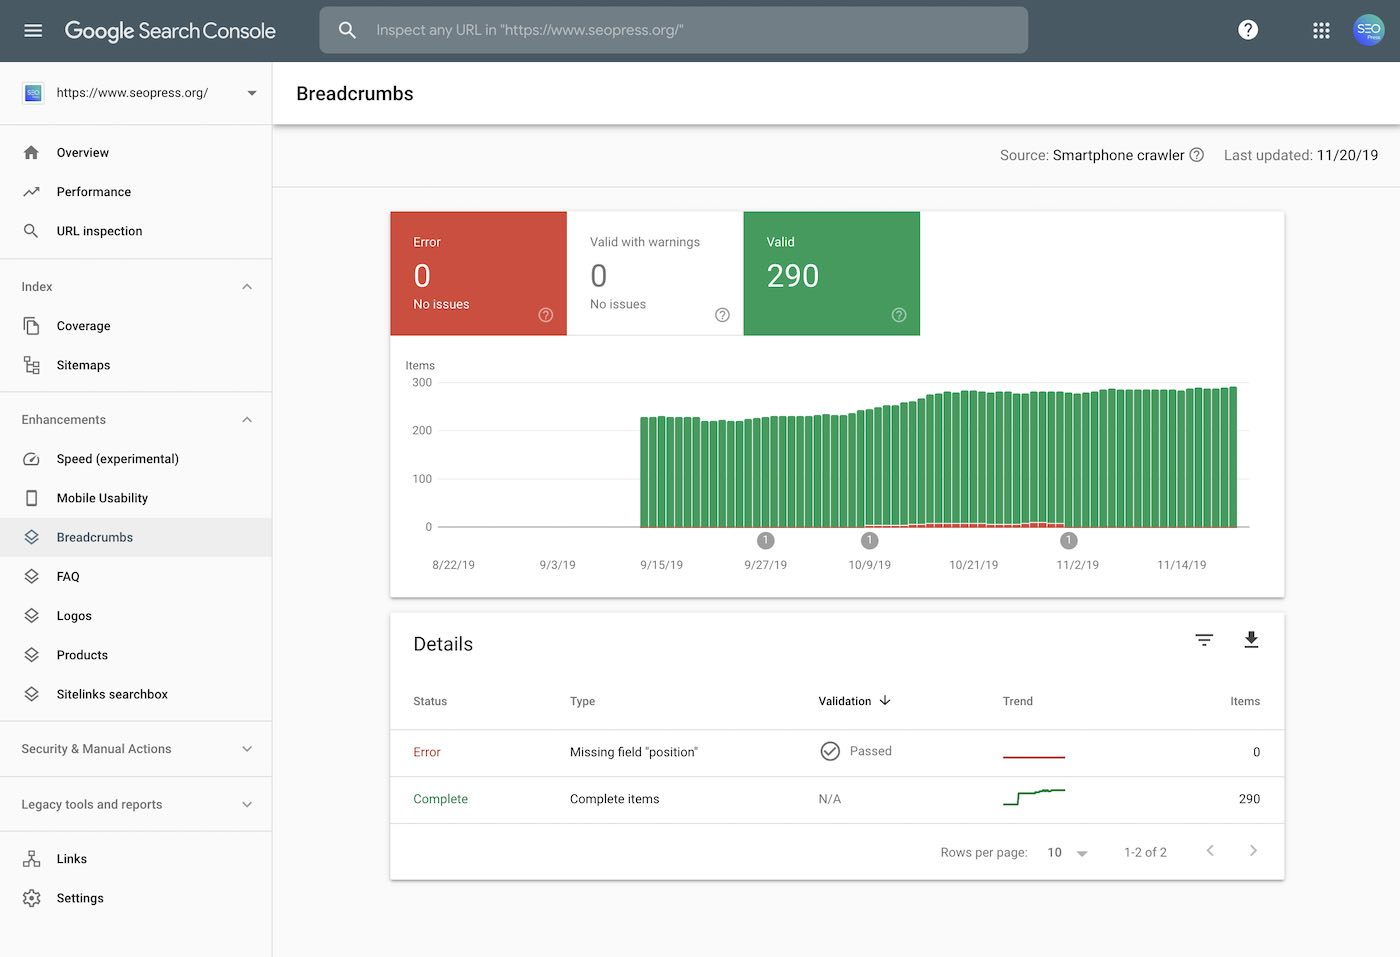 Search Console Breadcrumbs